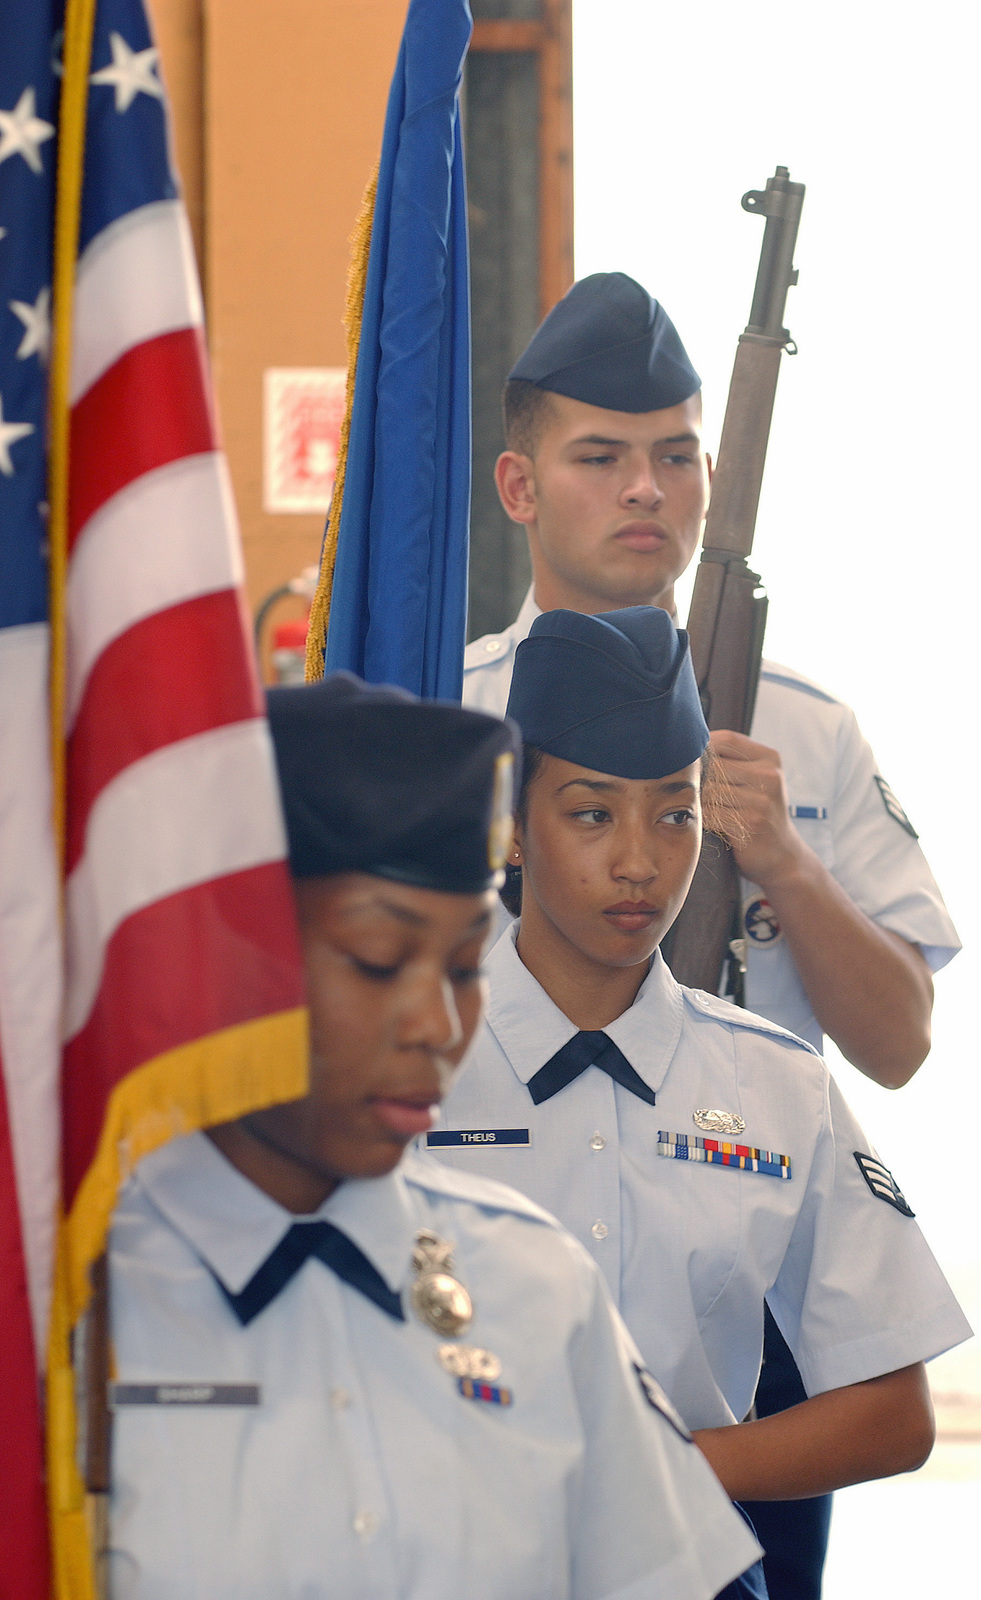 US Air Force (USAF) Airmen assigned to the 31st Fighter Wing (FW), Honor Guard Team practice posting the Colors during a drill practice held at Aviano Air Base (AB), Italy. Pictured are AIRMAN First Class (A1C) Candace Sharp (foreground), 31st Security Forces Squadron (SFS), SENIOR AIRMAN (SRA) On Theus (center), 31st Supply Squadron, and SRA Luis Flores, 555th Fighter Squadron (FS)